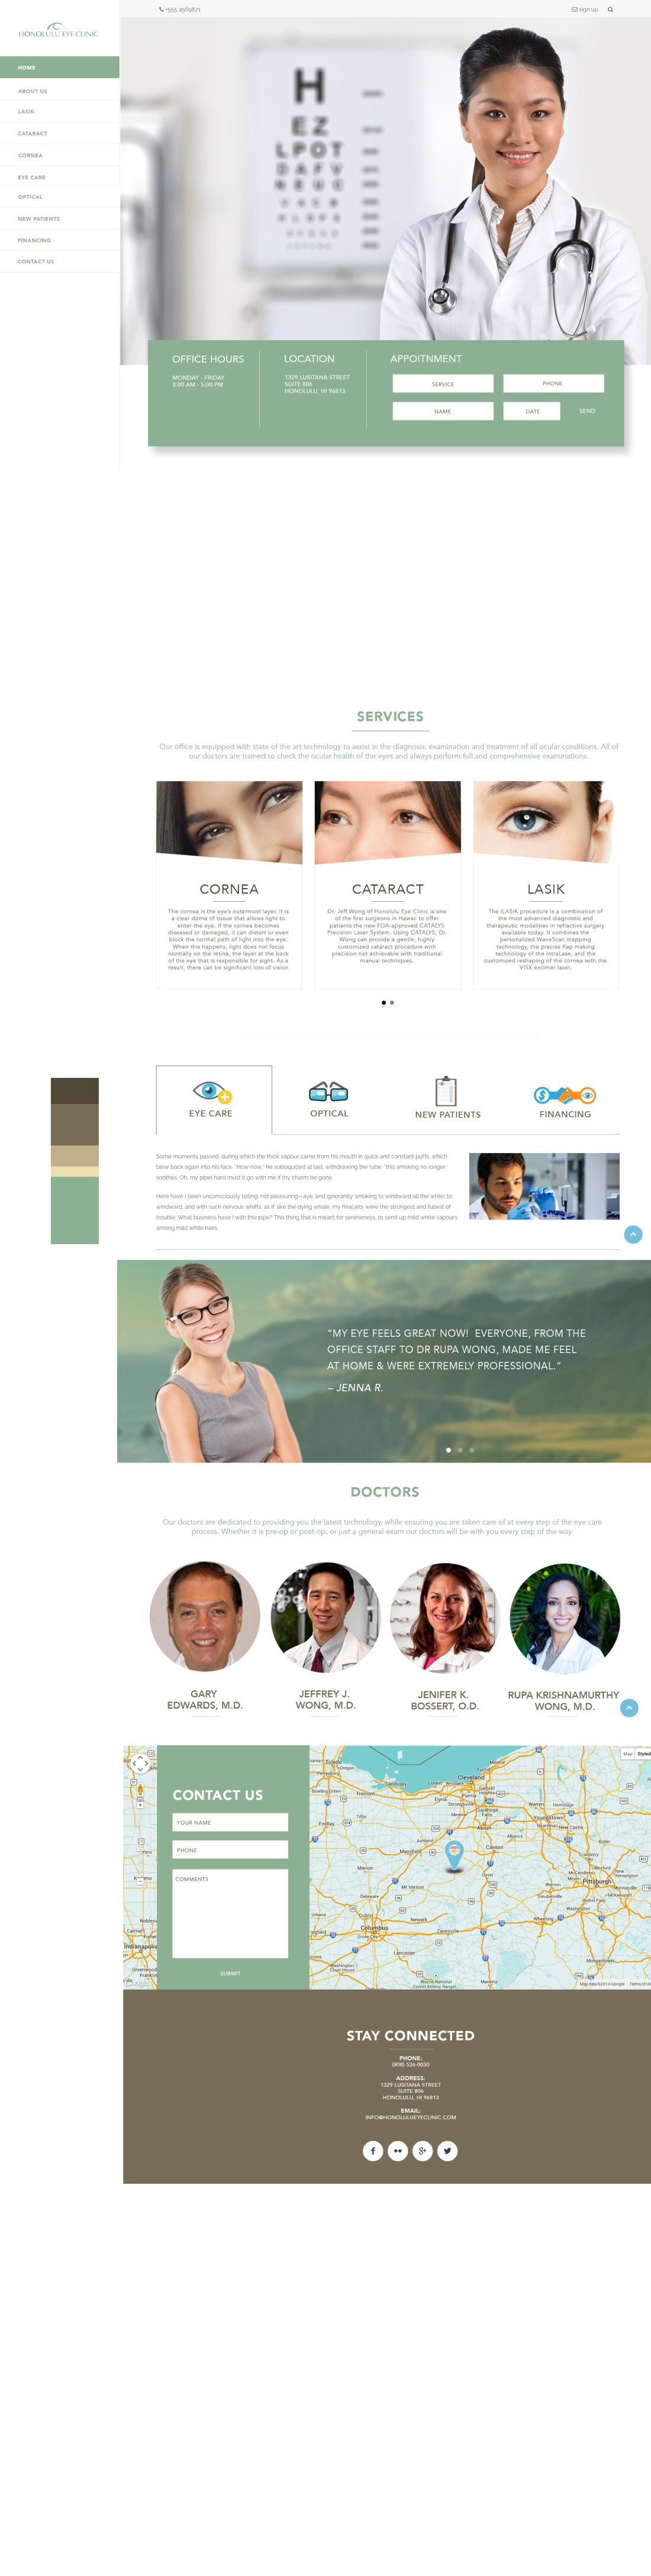 honolulu_websitemockup